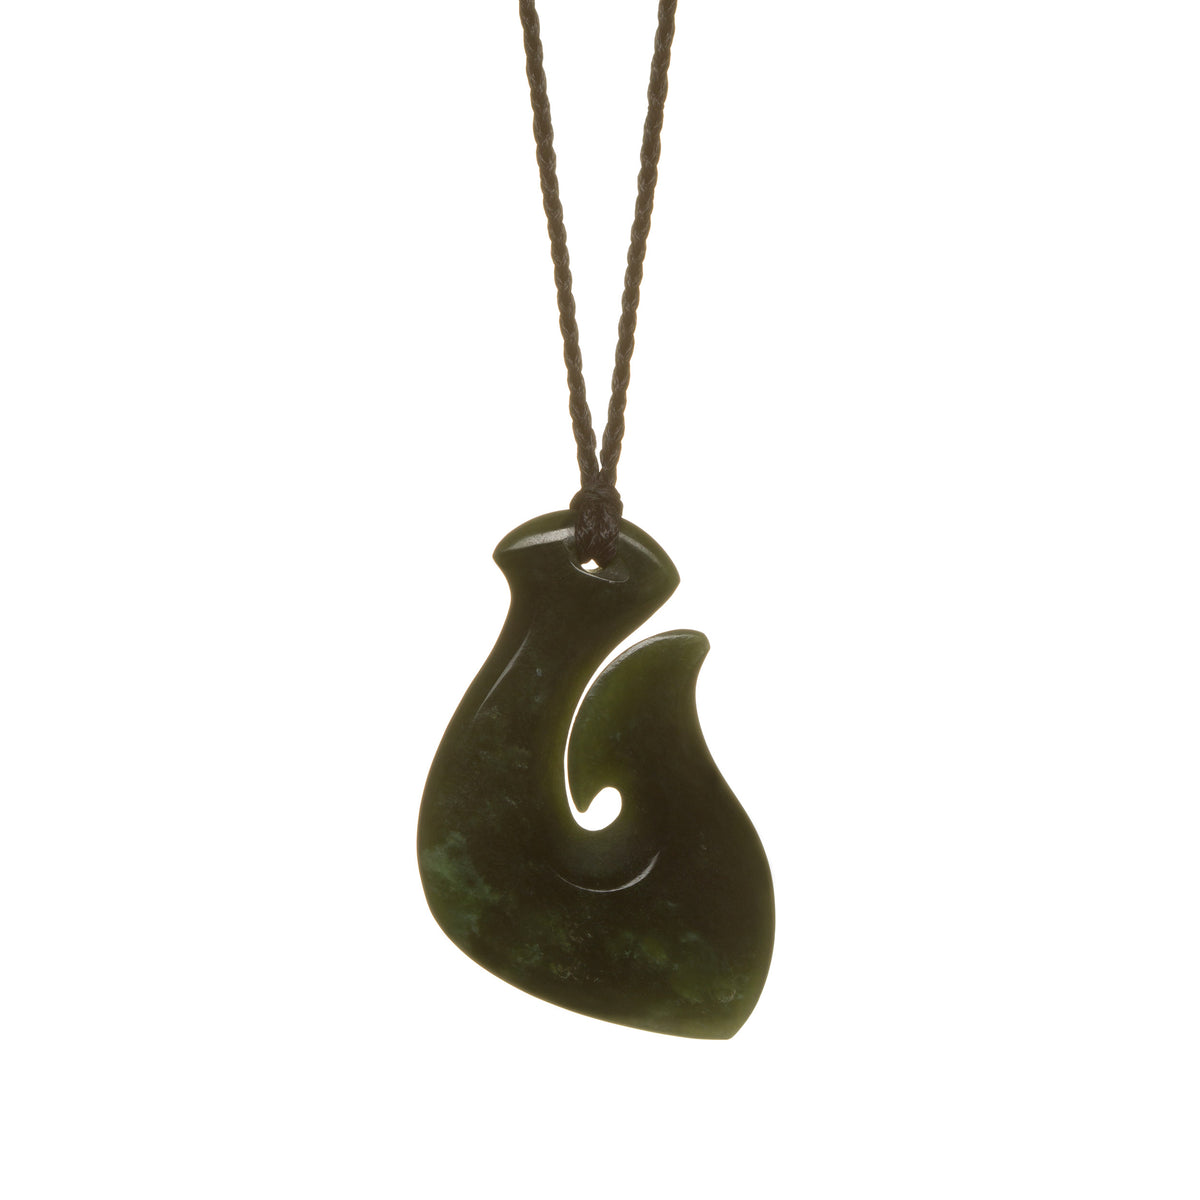 New Zealand Pounamu // LUHOOK268P-A / 44mm x 30mm